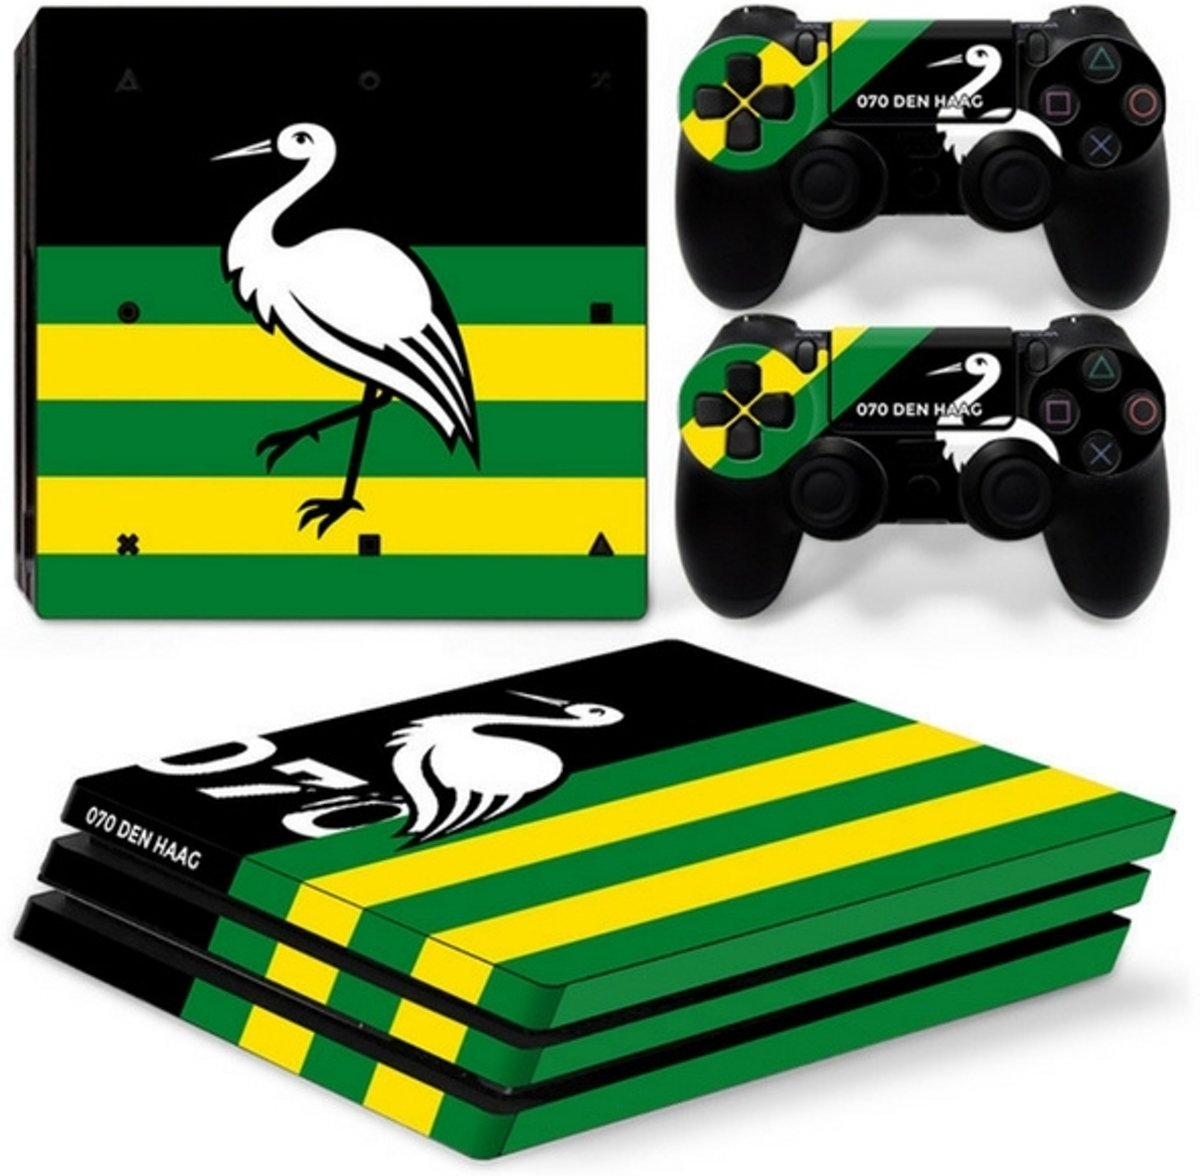 Den Haag - PS4 Pro Console Skins PlayStation Stickers